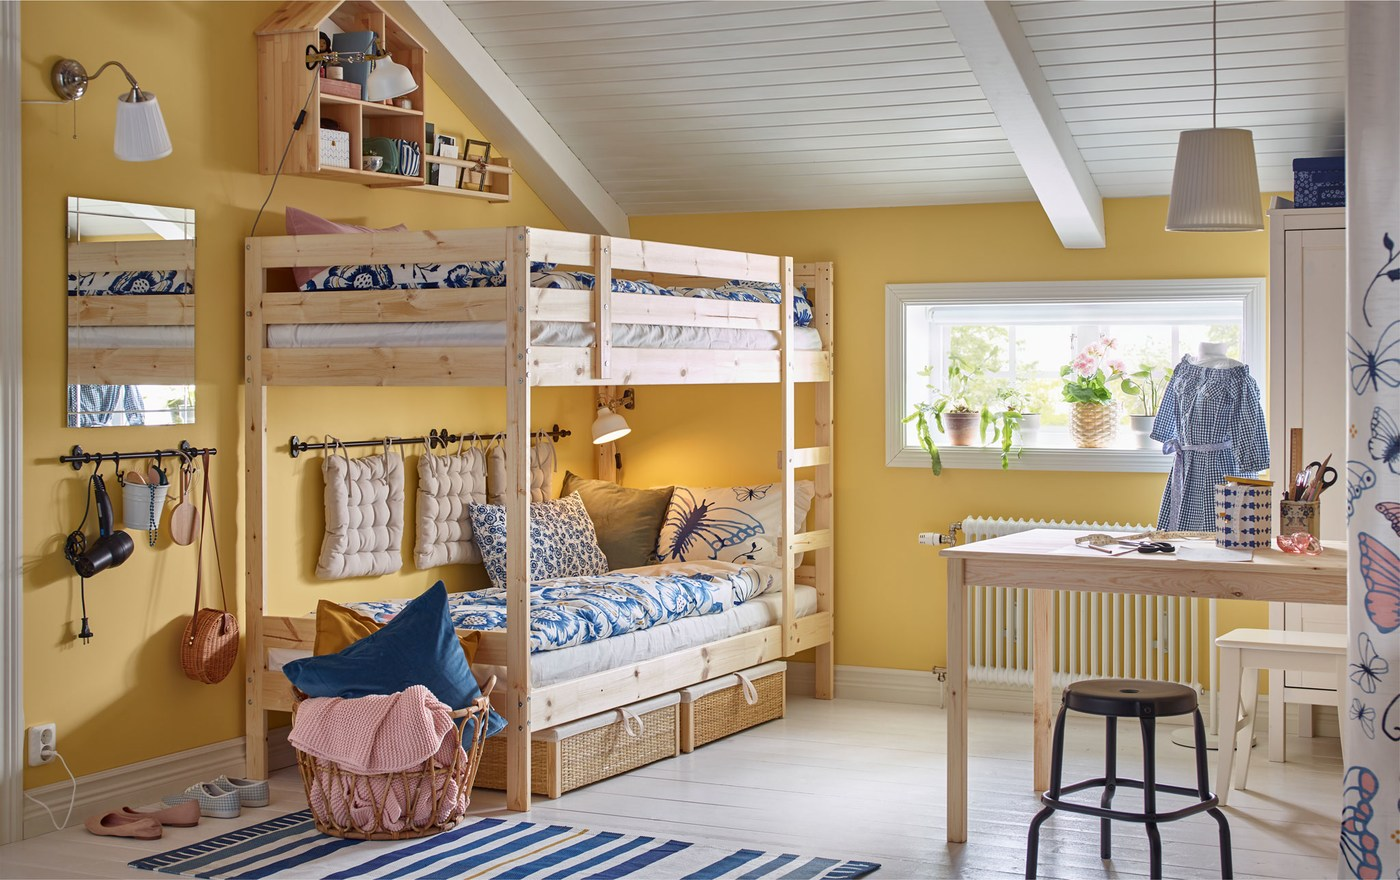 A children's bedroom with an IKEA MYDAL bunk bed in pine, a work desk, a NÄPEN white clothes stand and stools.